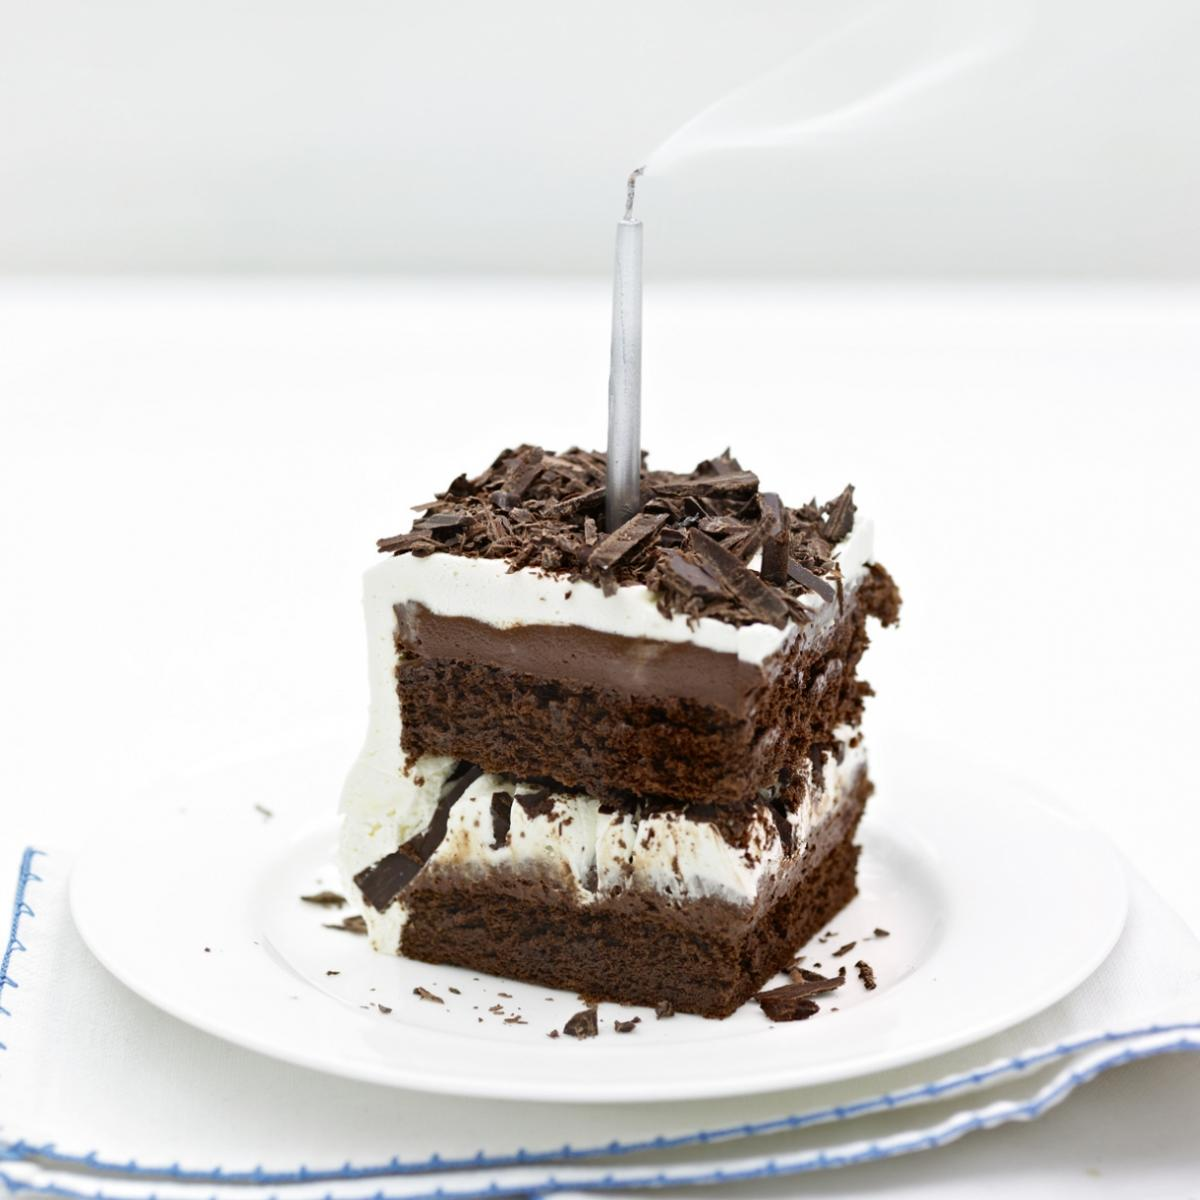 A picture of Delia's Squidgy Chocolate Cake recipe